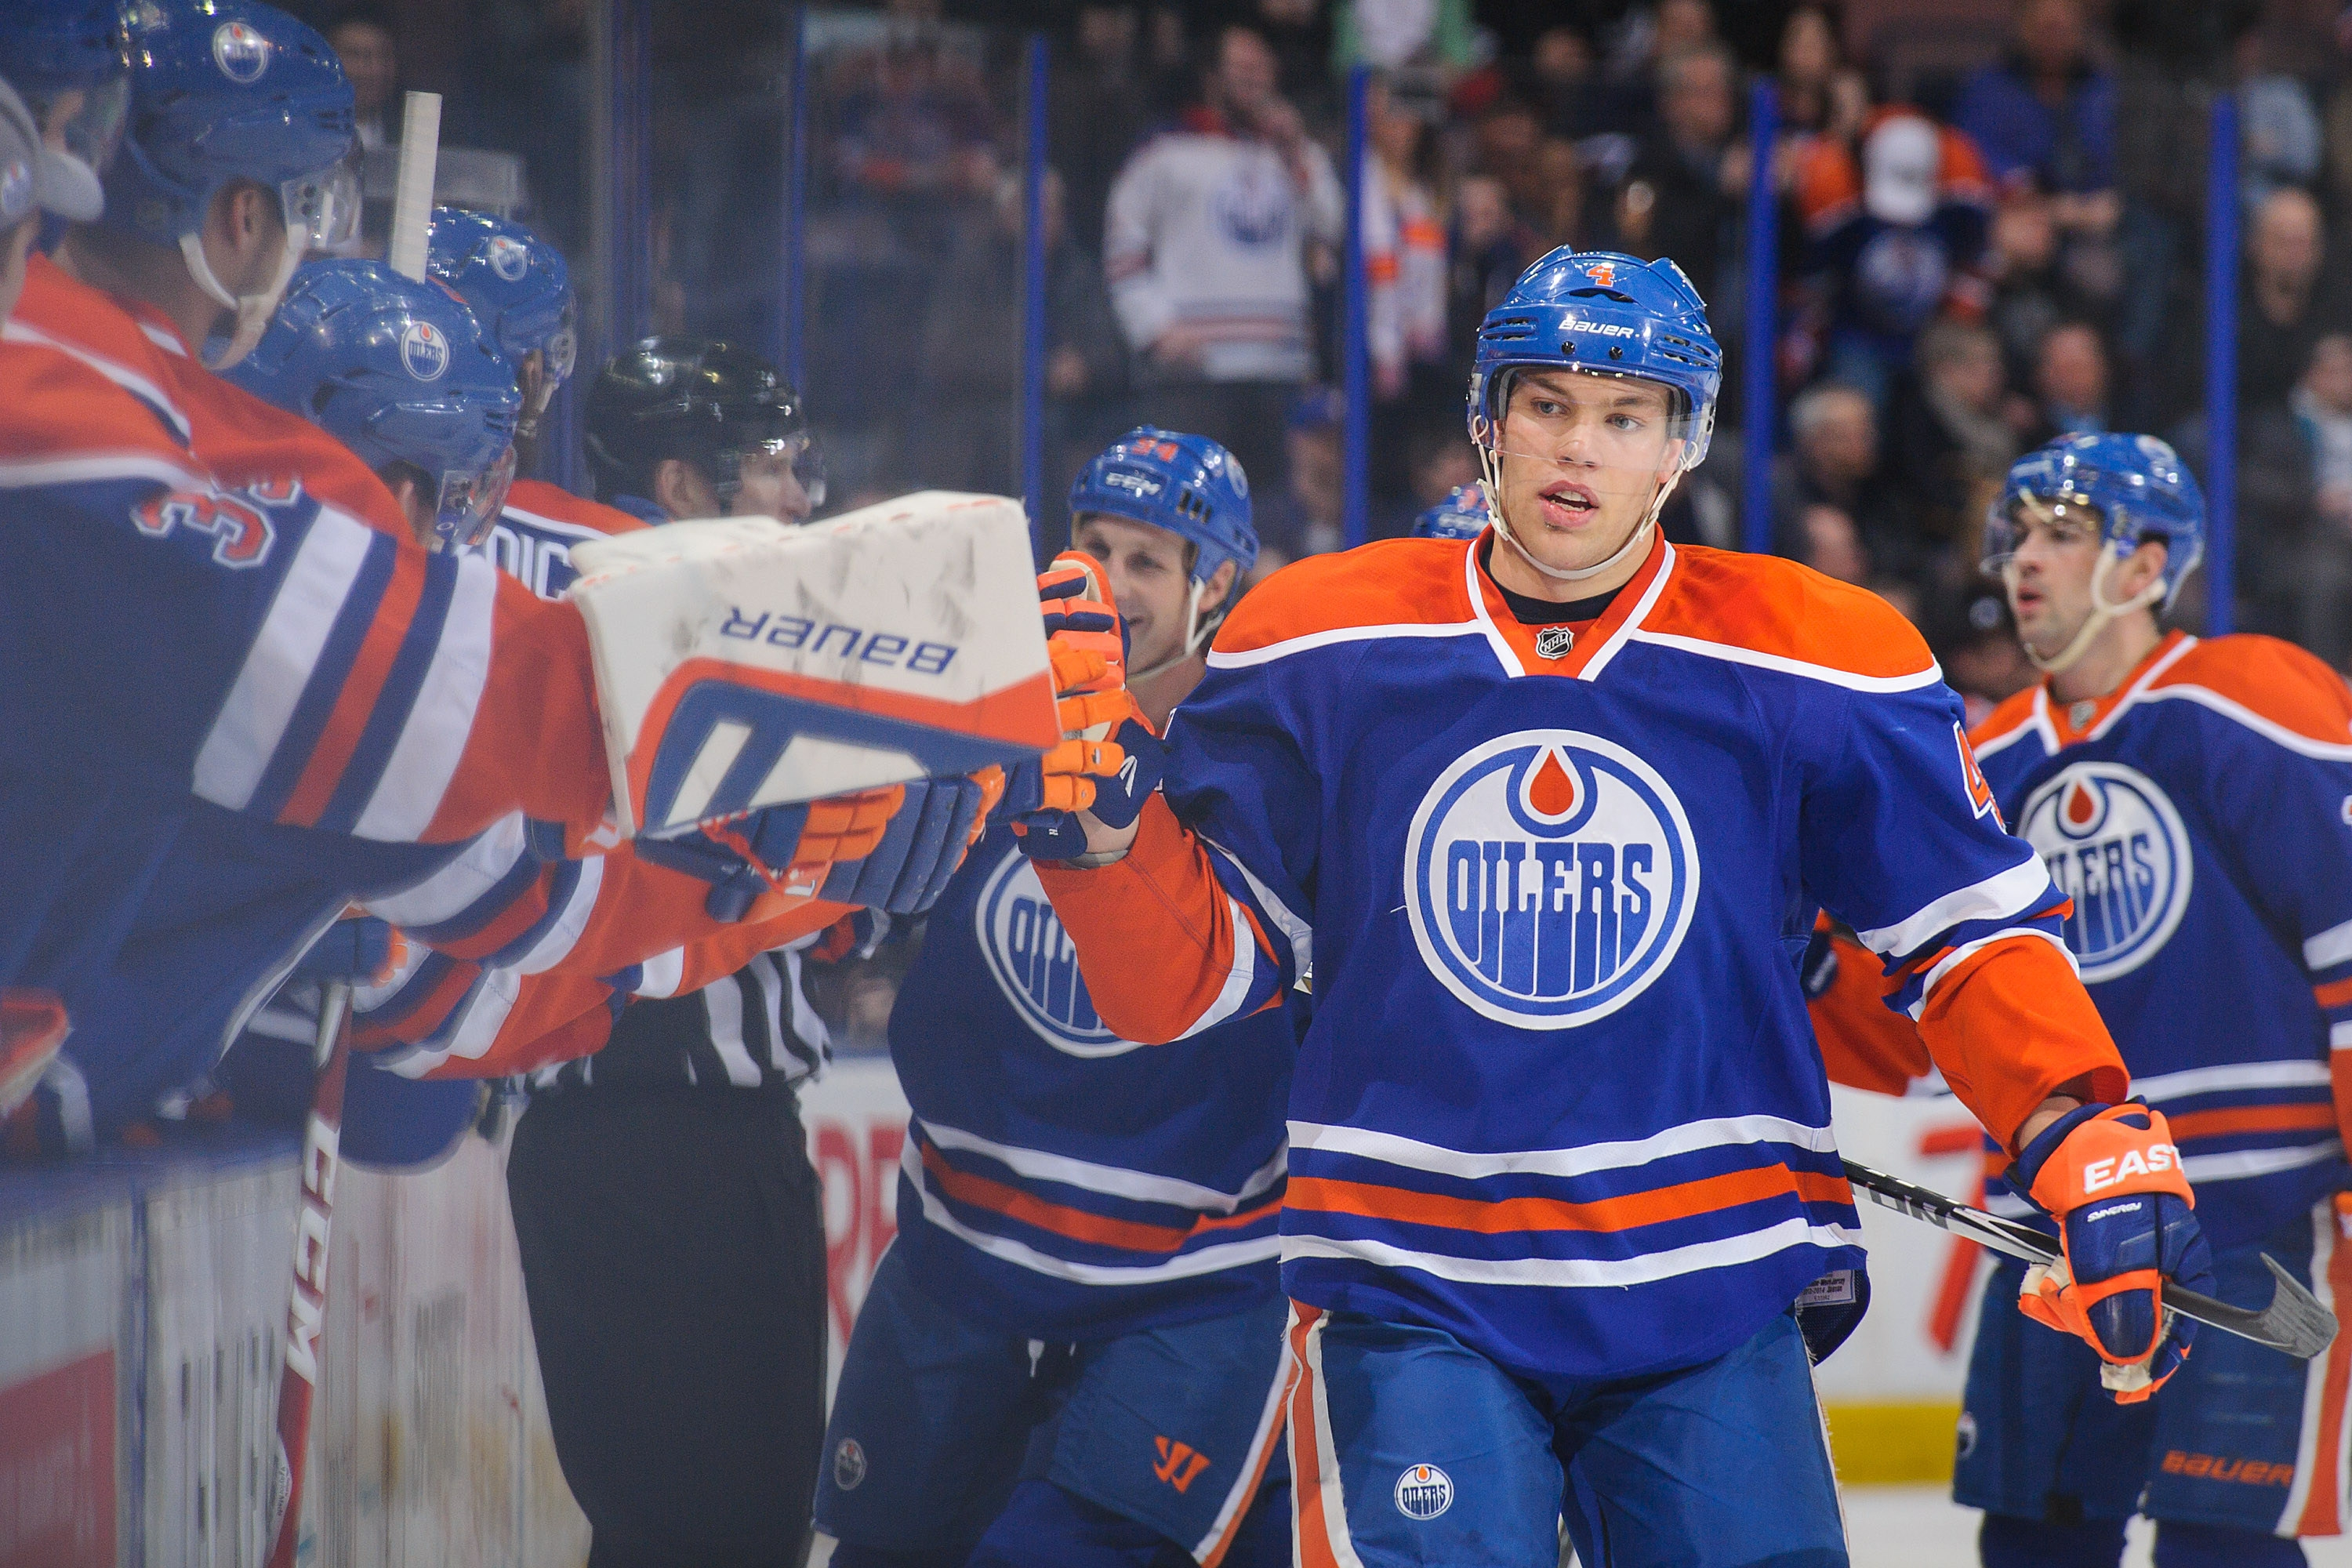 Taylor Hall, the Oilers No. 1 pick in 2010, celebrates after scoring against the Sabres on Thursday at Rexall Place.